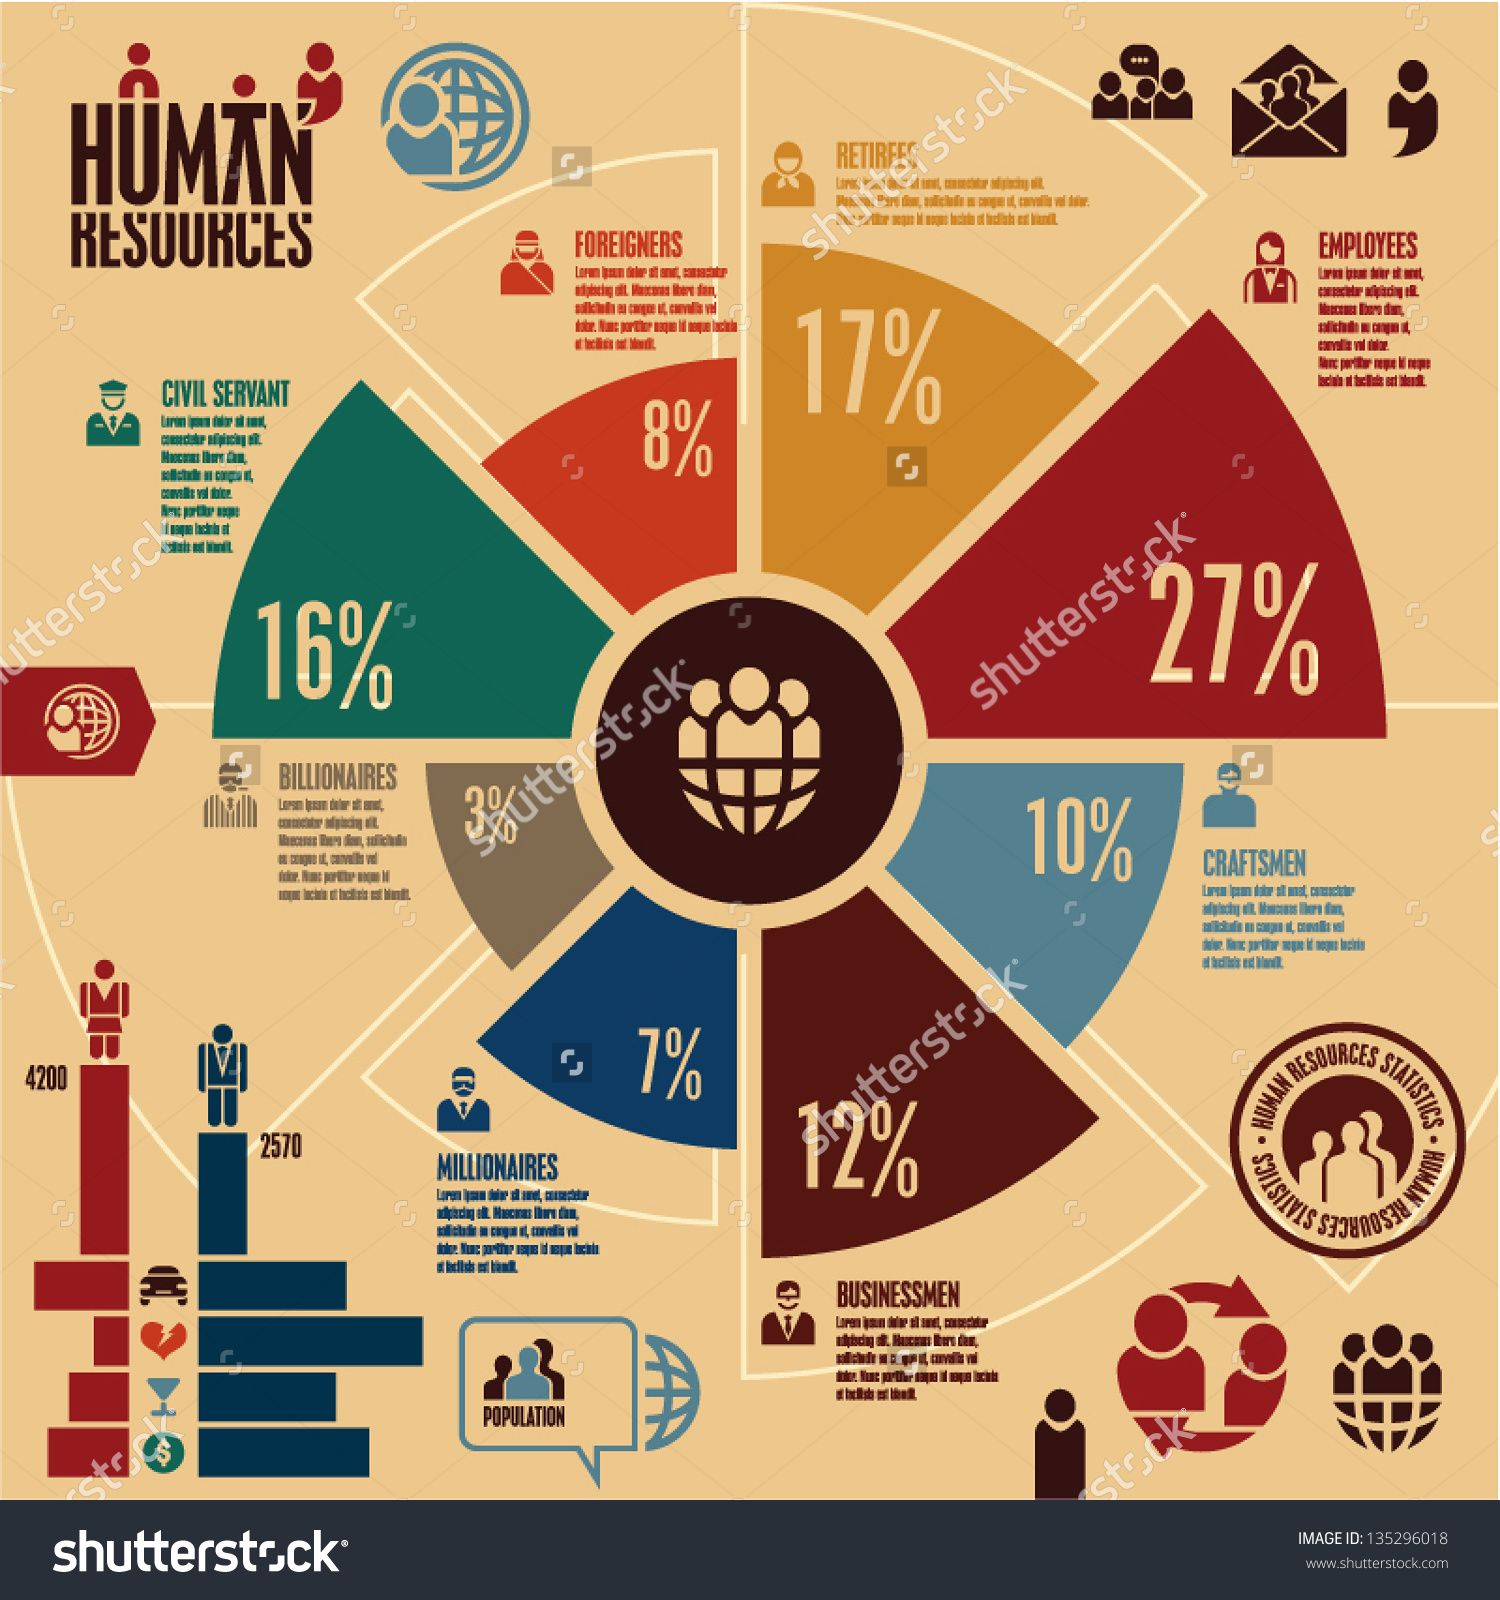 Pin by on Human Resources (HR